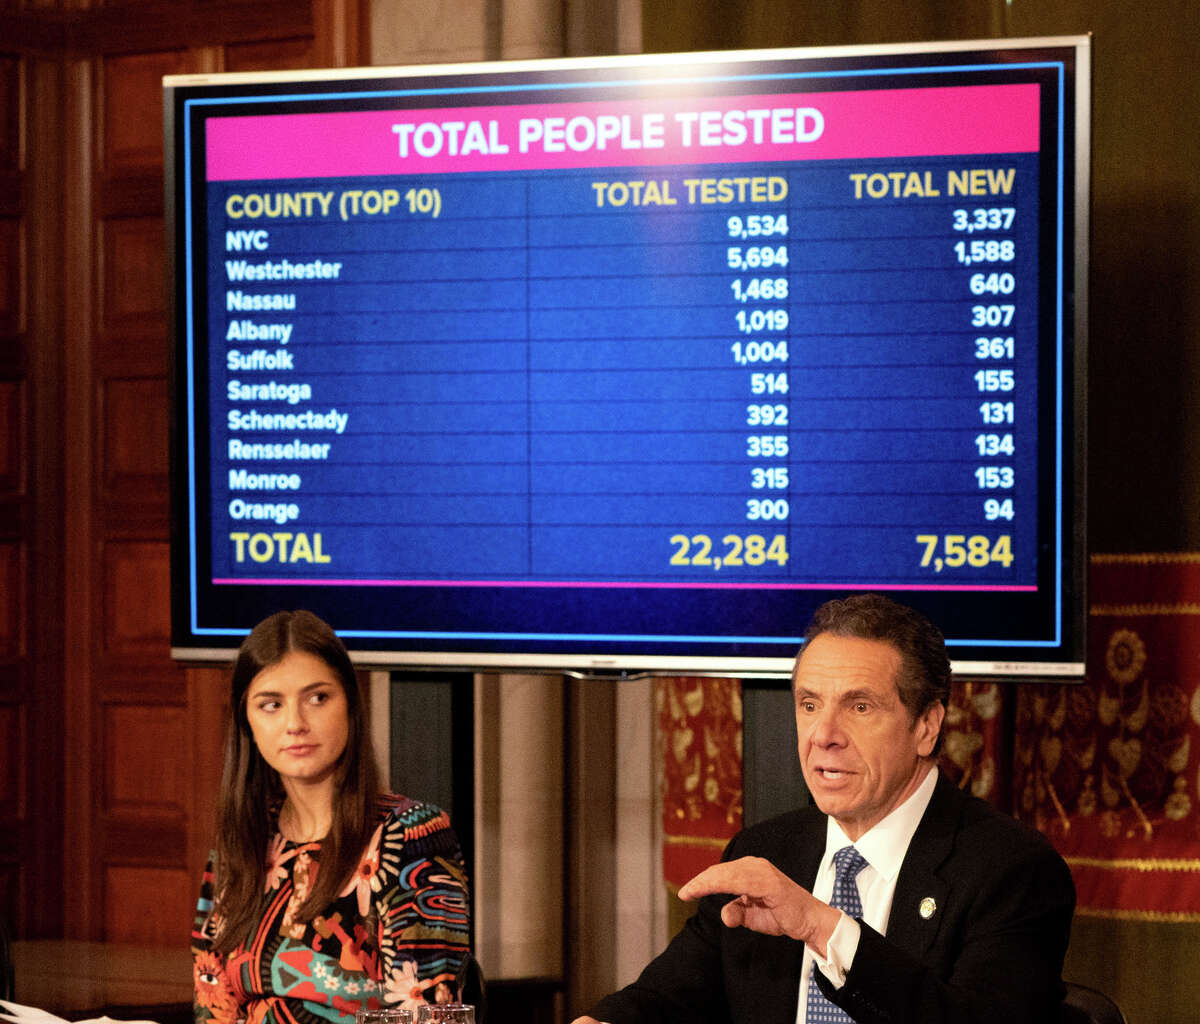 Gov. Andrew Cuomo holds a daily coronavirus news briefing on Thursday, March 19, 2020, in the Red Room at the Capitol in Albany, N.Y. (Office of the Governor)